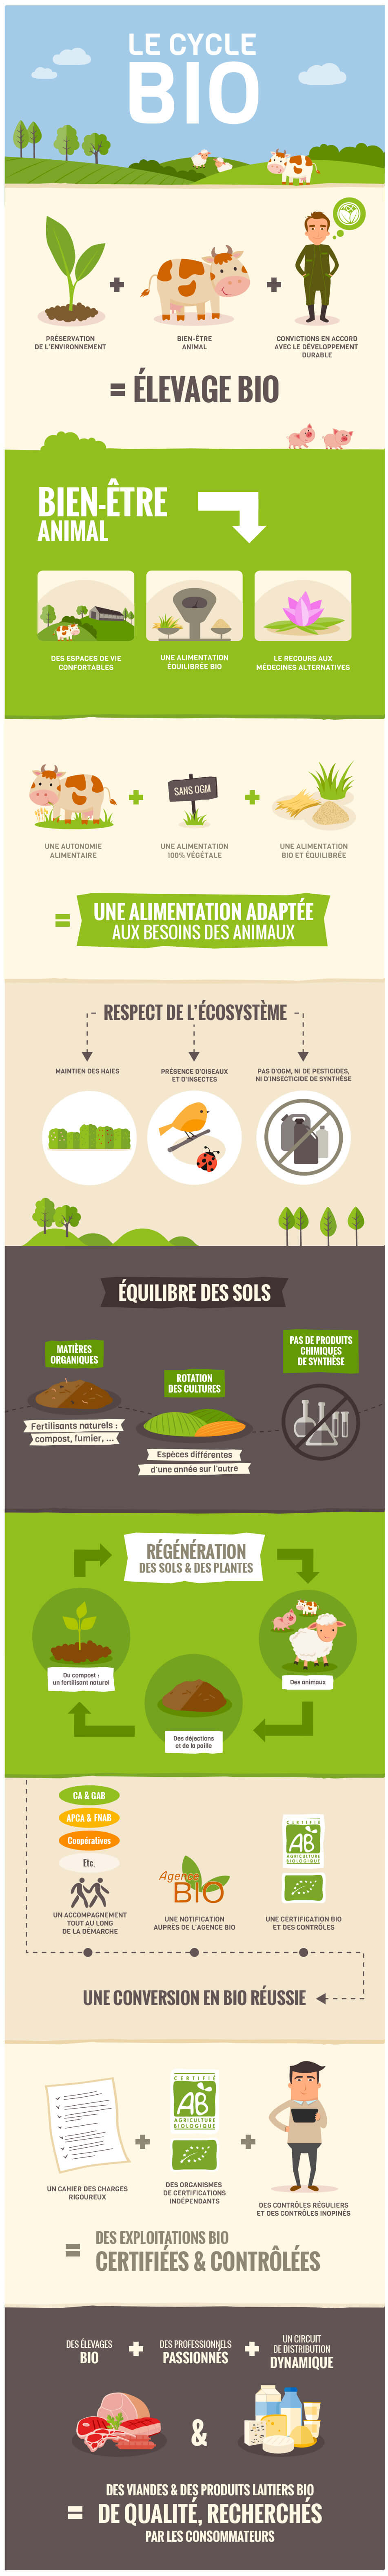 Infographie Le cycle bio